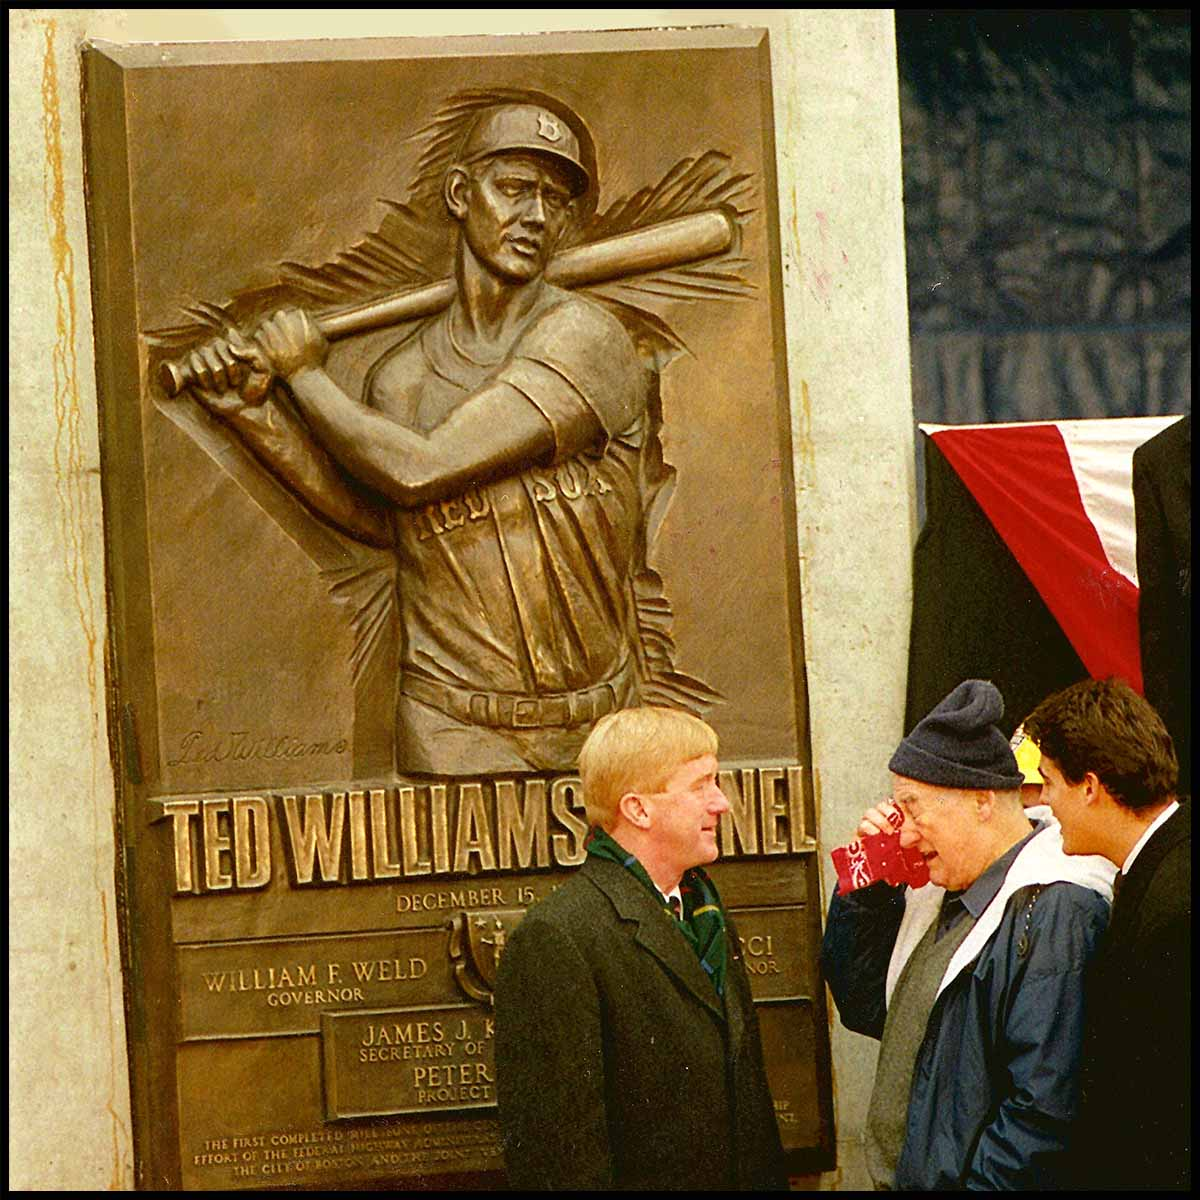 Ted Williams Tunnel Heroic Portrait Reliefs